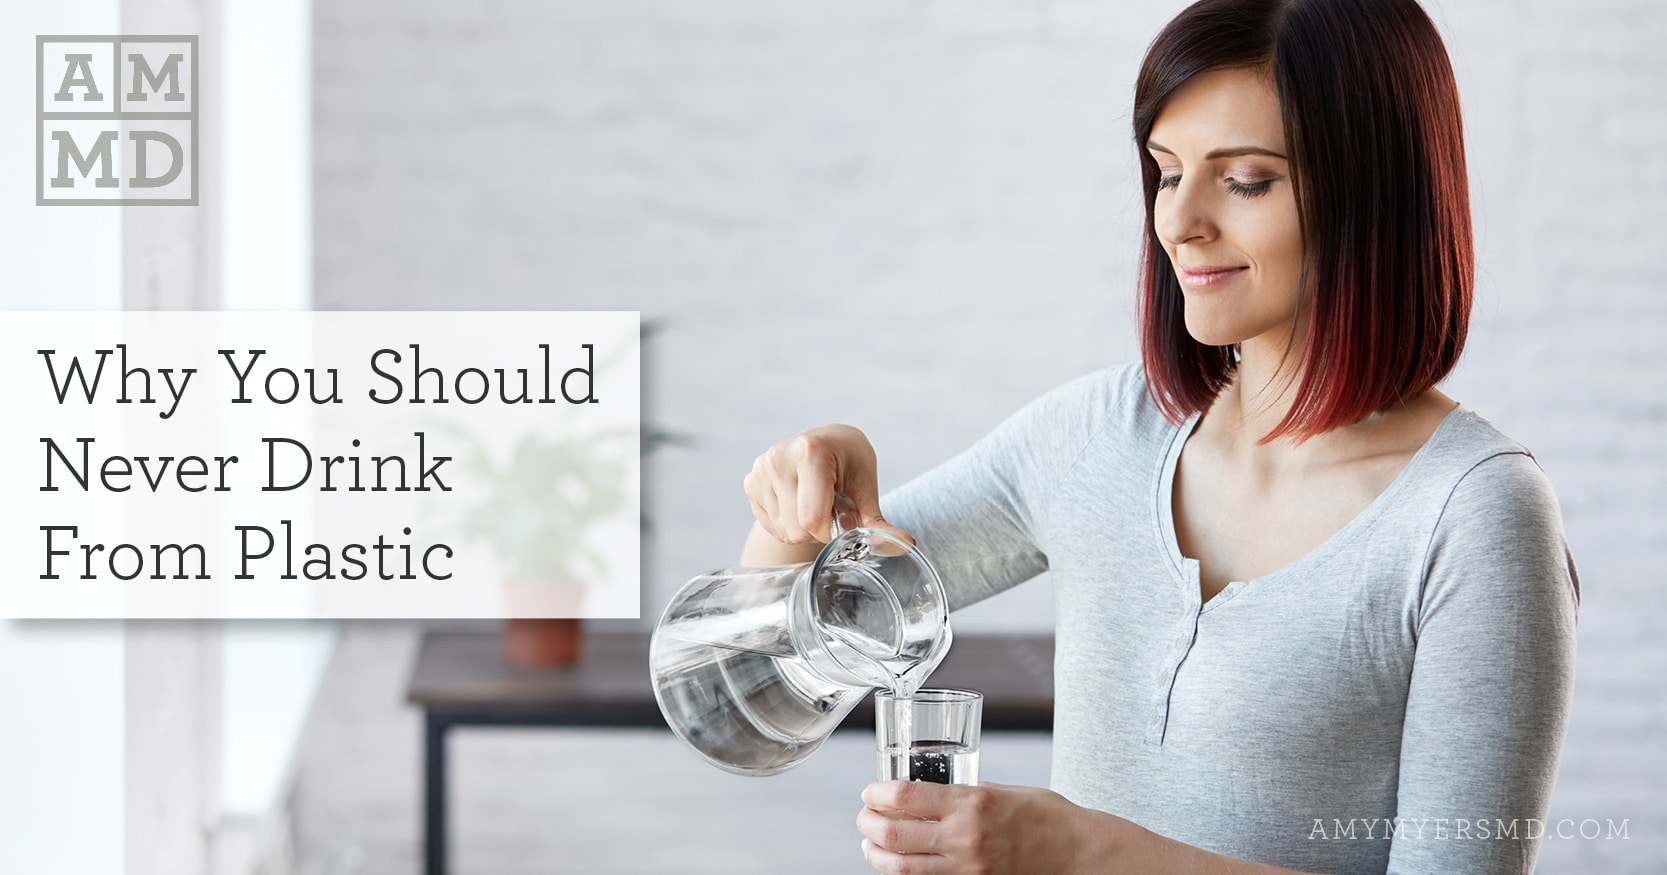 Why You Should Never Drink Water From Plastic Bottle - A Woman Pouring Water into a Glass - Featured Image - Amy Myers MD